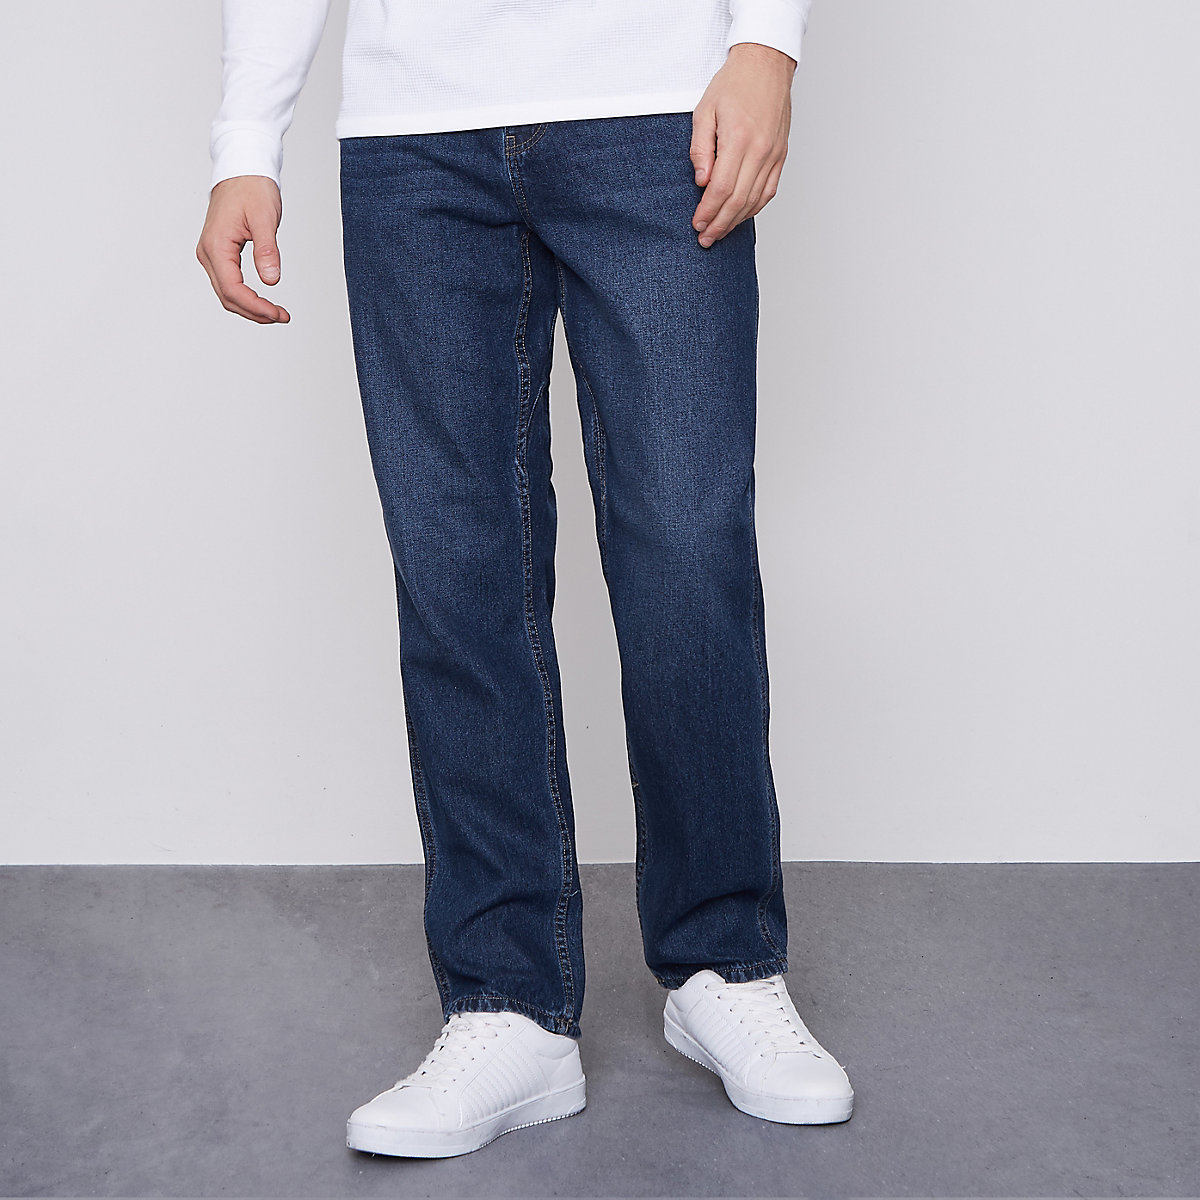 Monkee Genes blue relaxed fit worker jeans